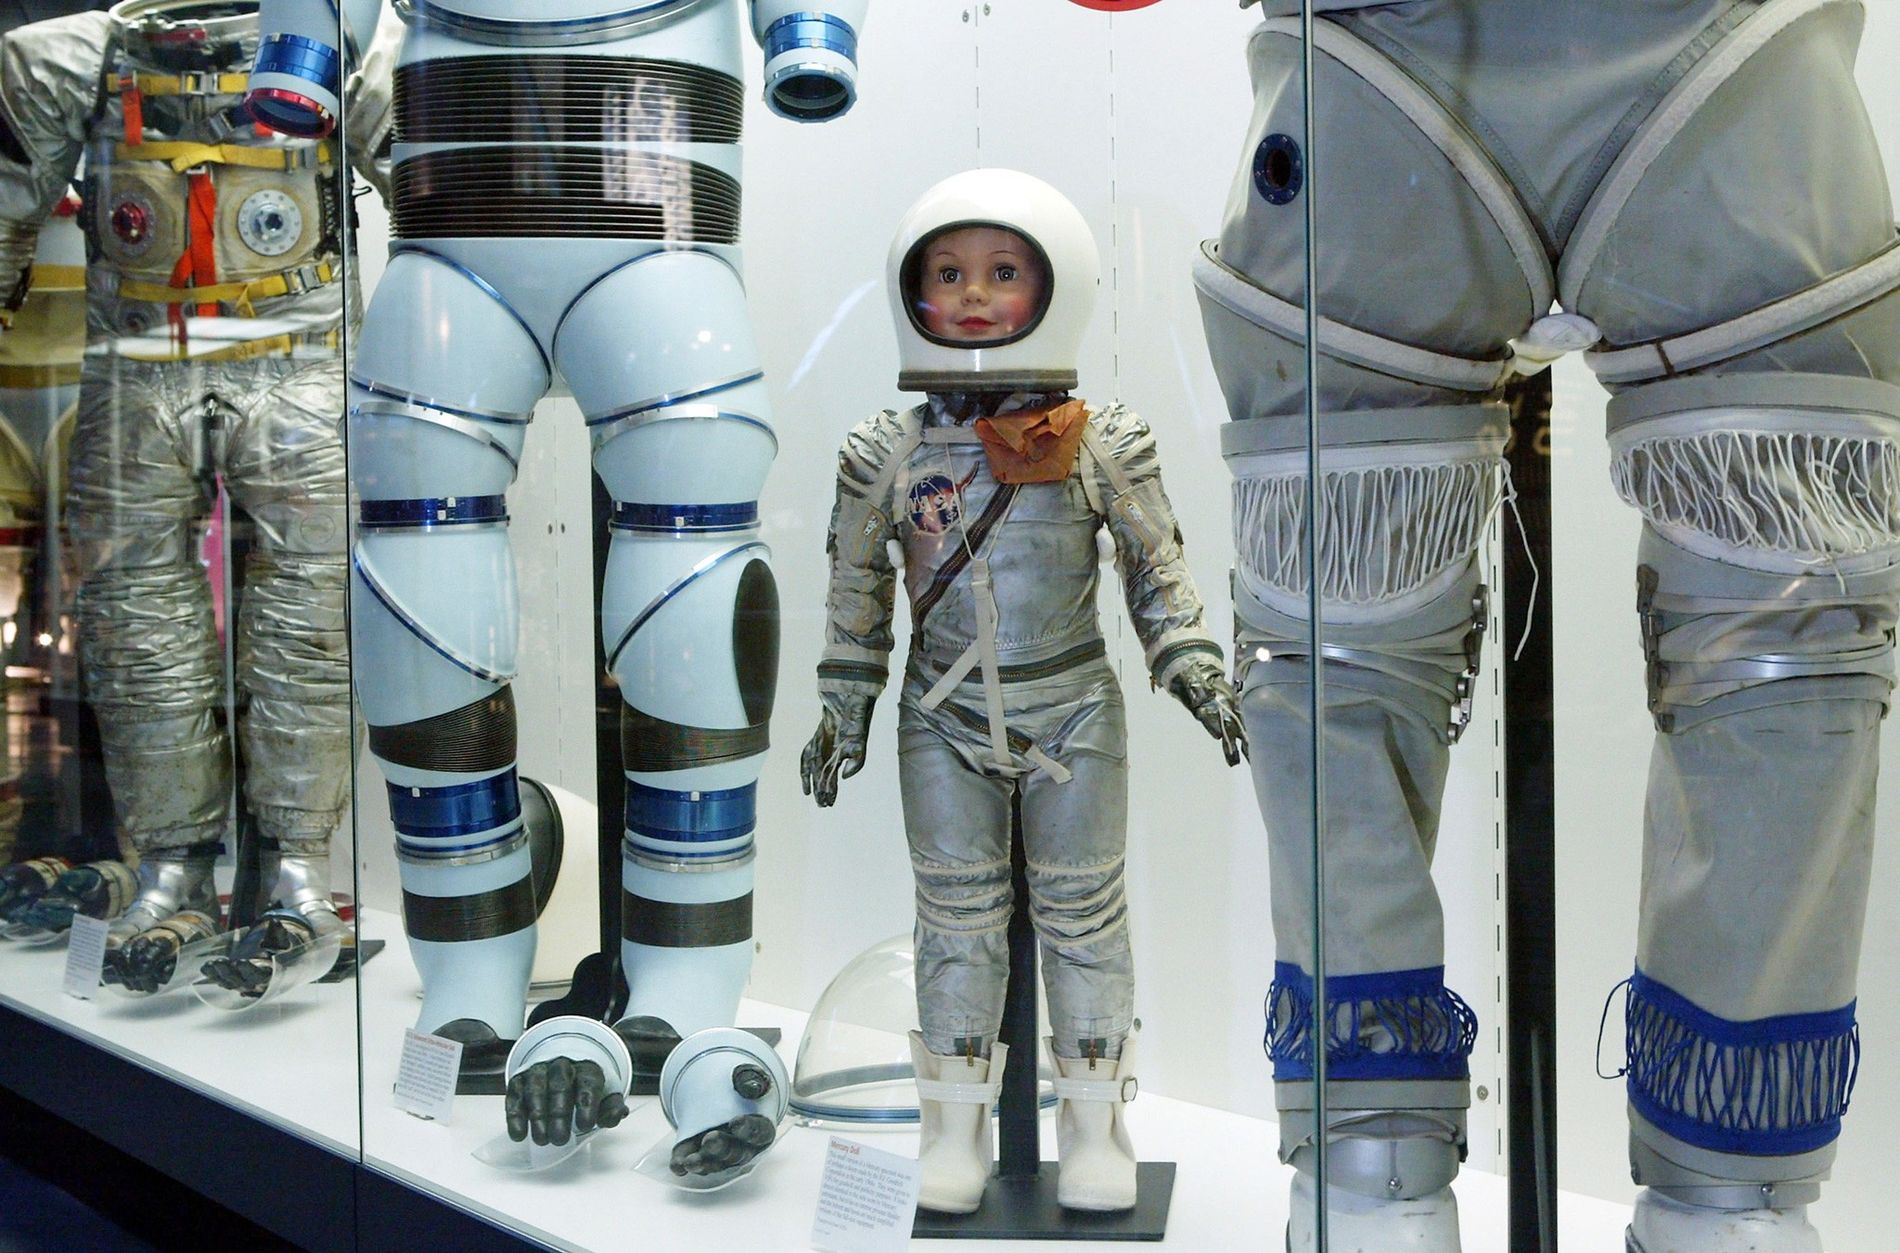 Spacesuits are among the artifacts in the collection of the Smithsonian that include plastic parts—parts that ...